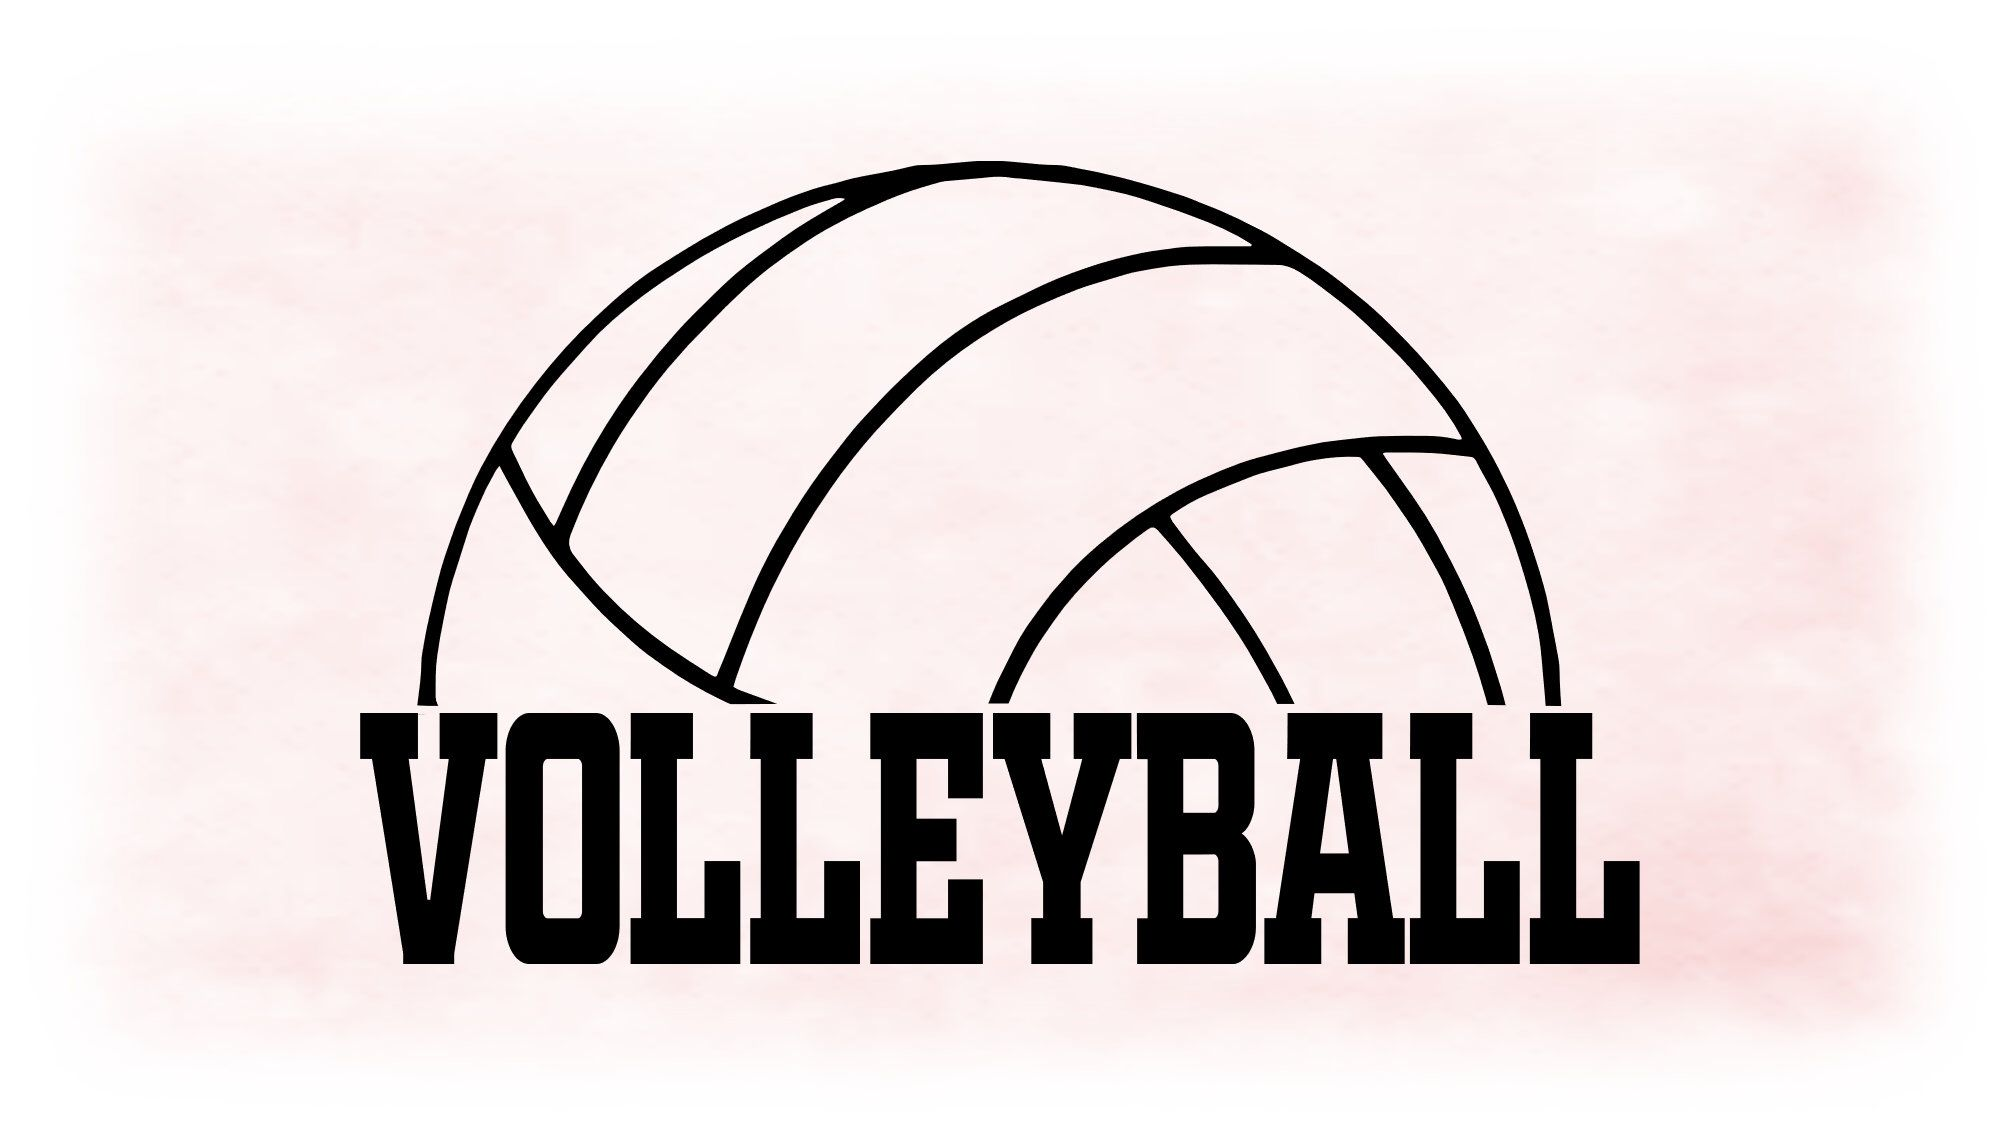 Sports Clipart Large Black White Half Volleyball Shape With Word Volleyball Make Into Any Color Digital Download Jpg Png Svg In 2020 Clip Art Large Black Black And White